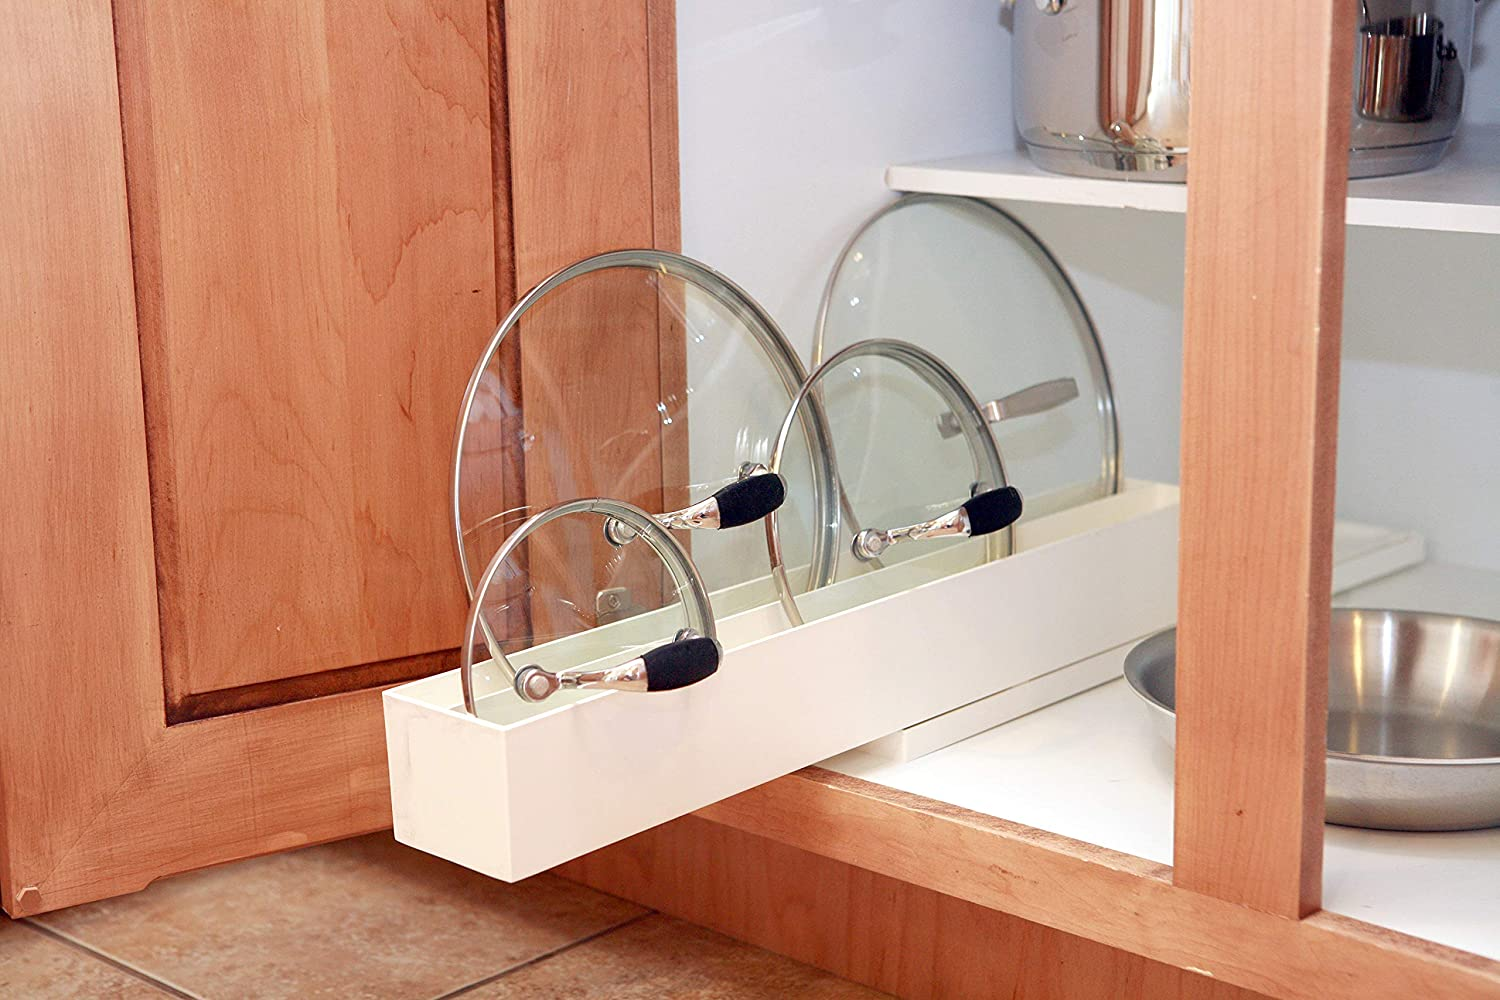 Dial Industries Pot and Pan Lid Organizer (B200W) -